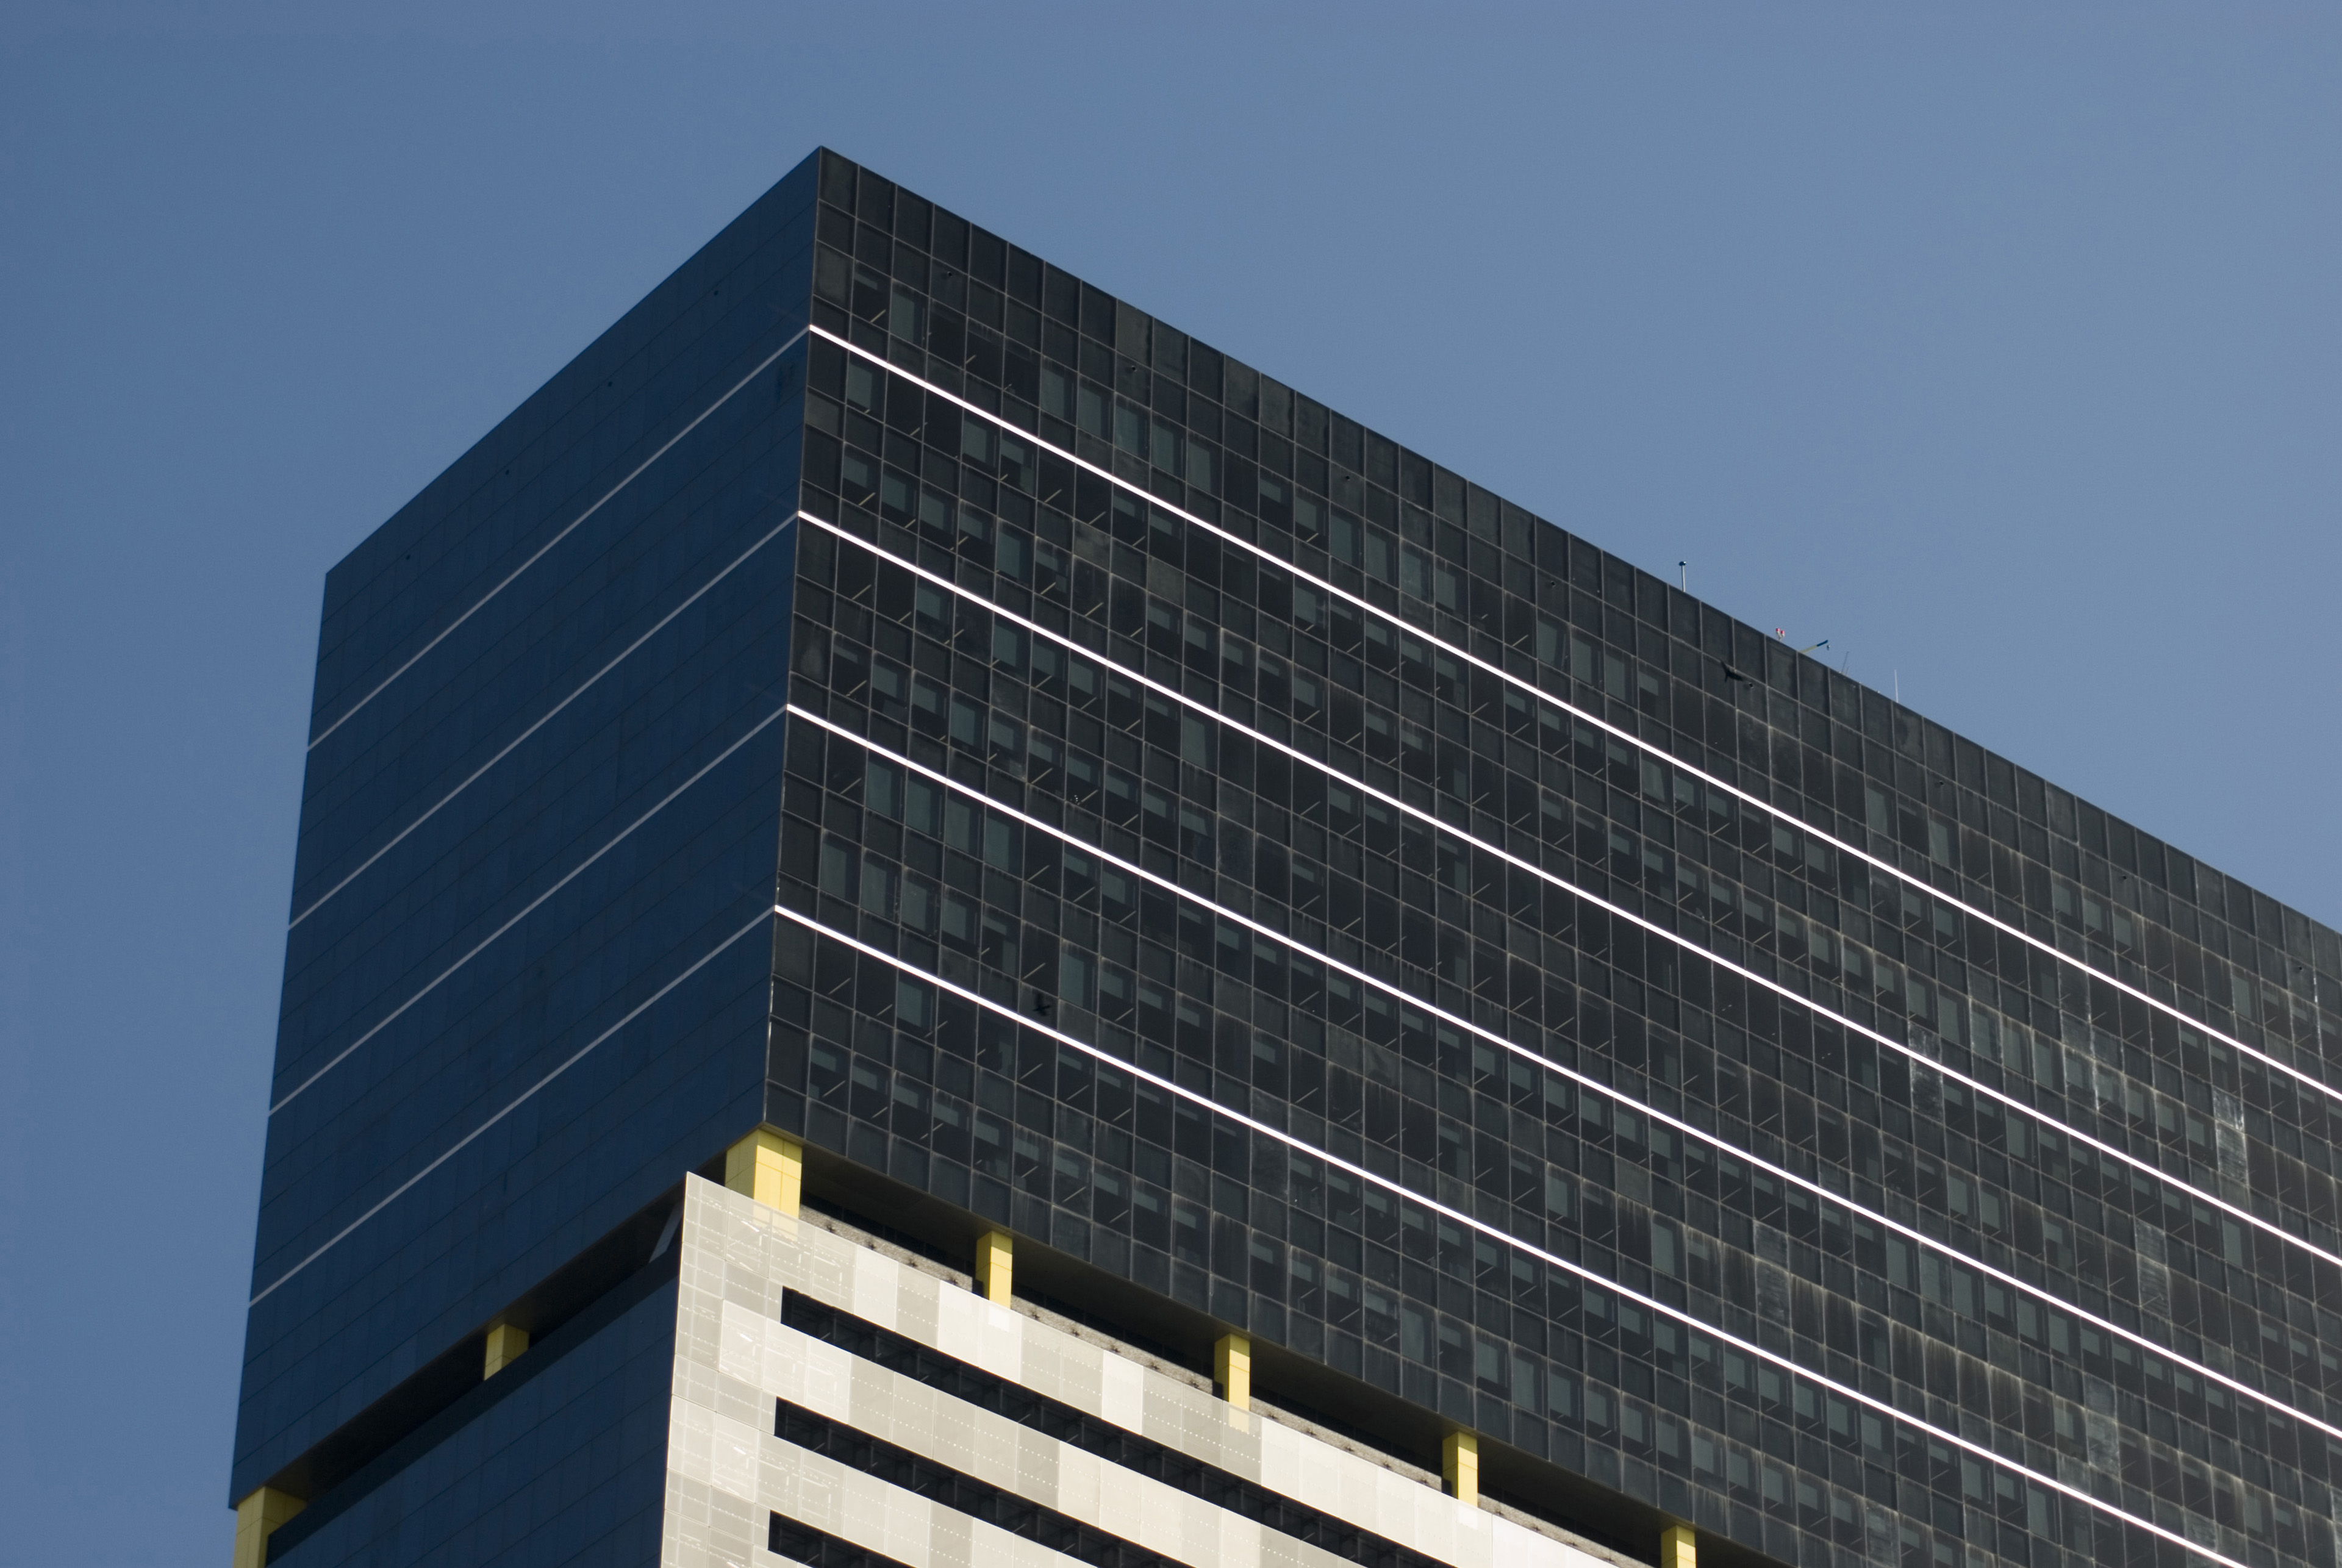 Top Part of Architectural Large Office Building with Glass Walls on Blue Gray Sky Background.